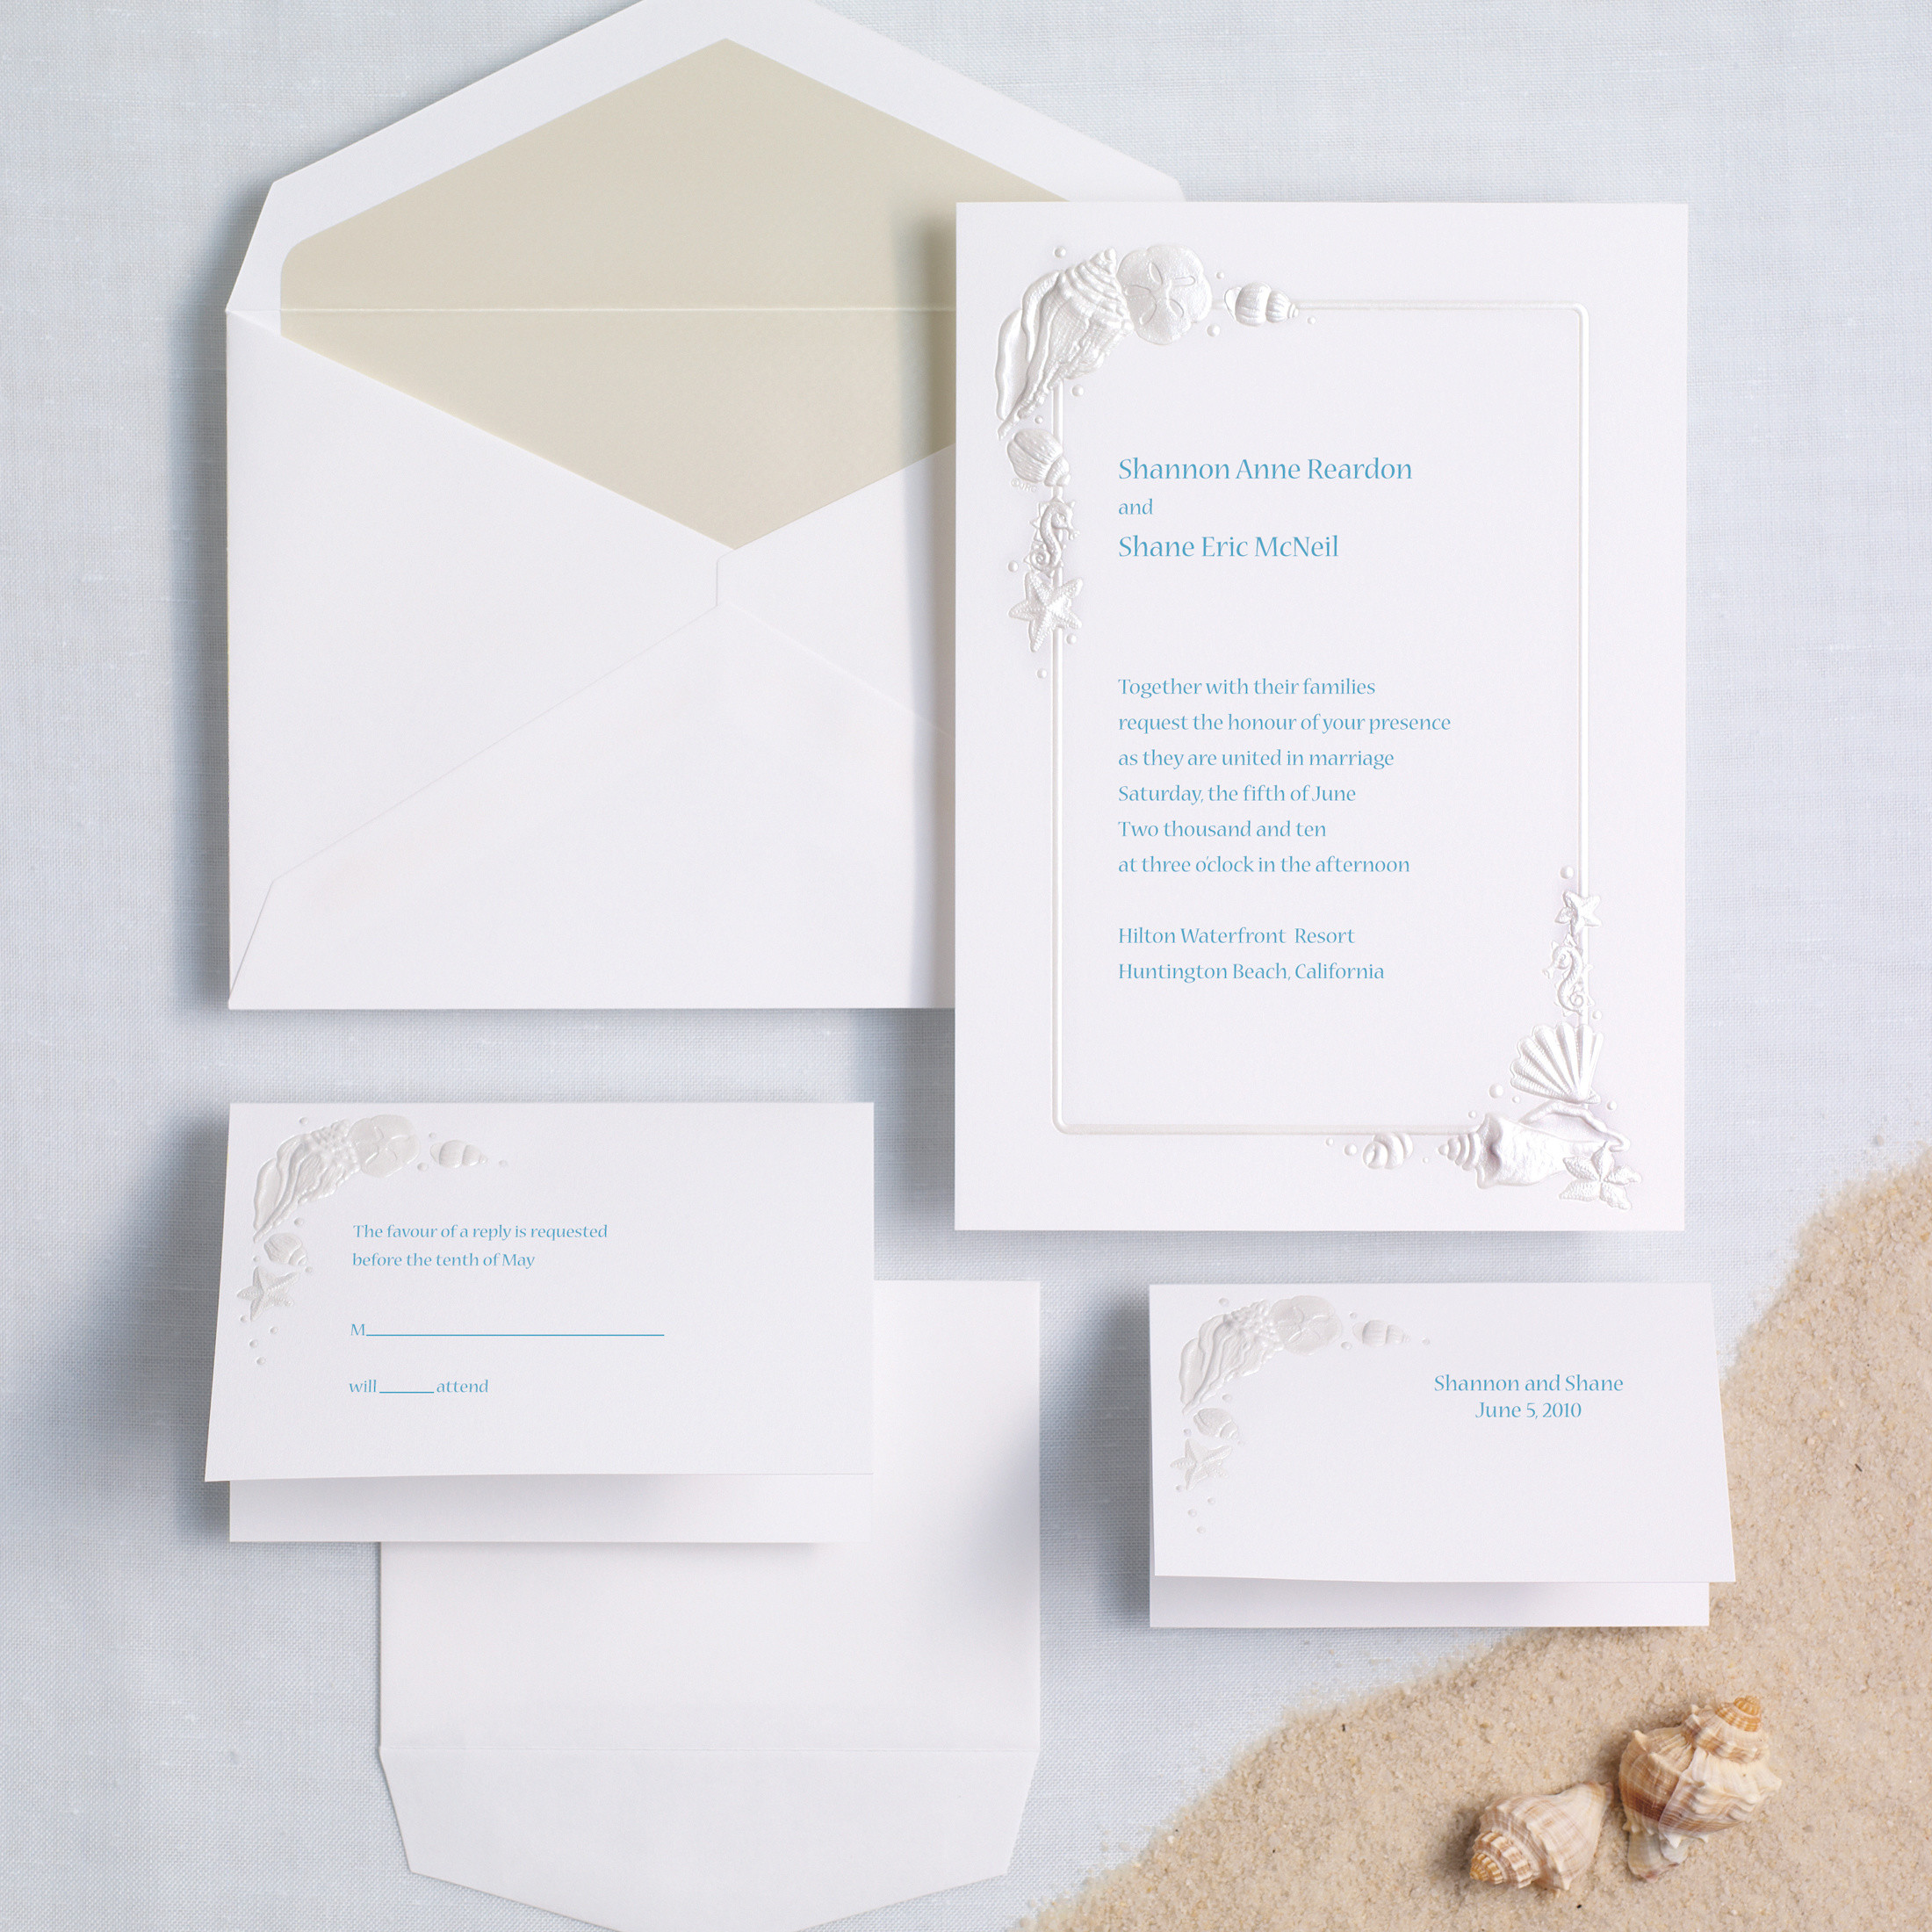 sea treasures - Weddings Invitations